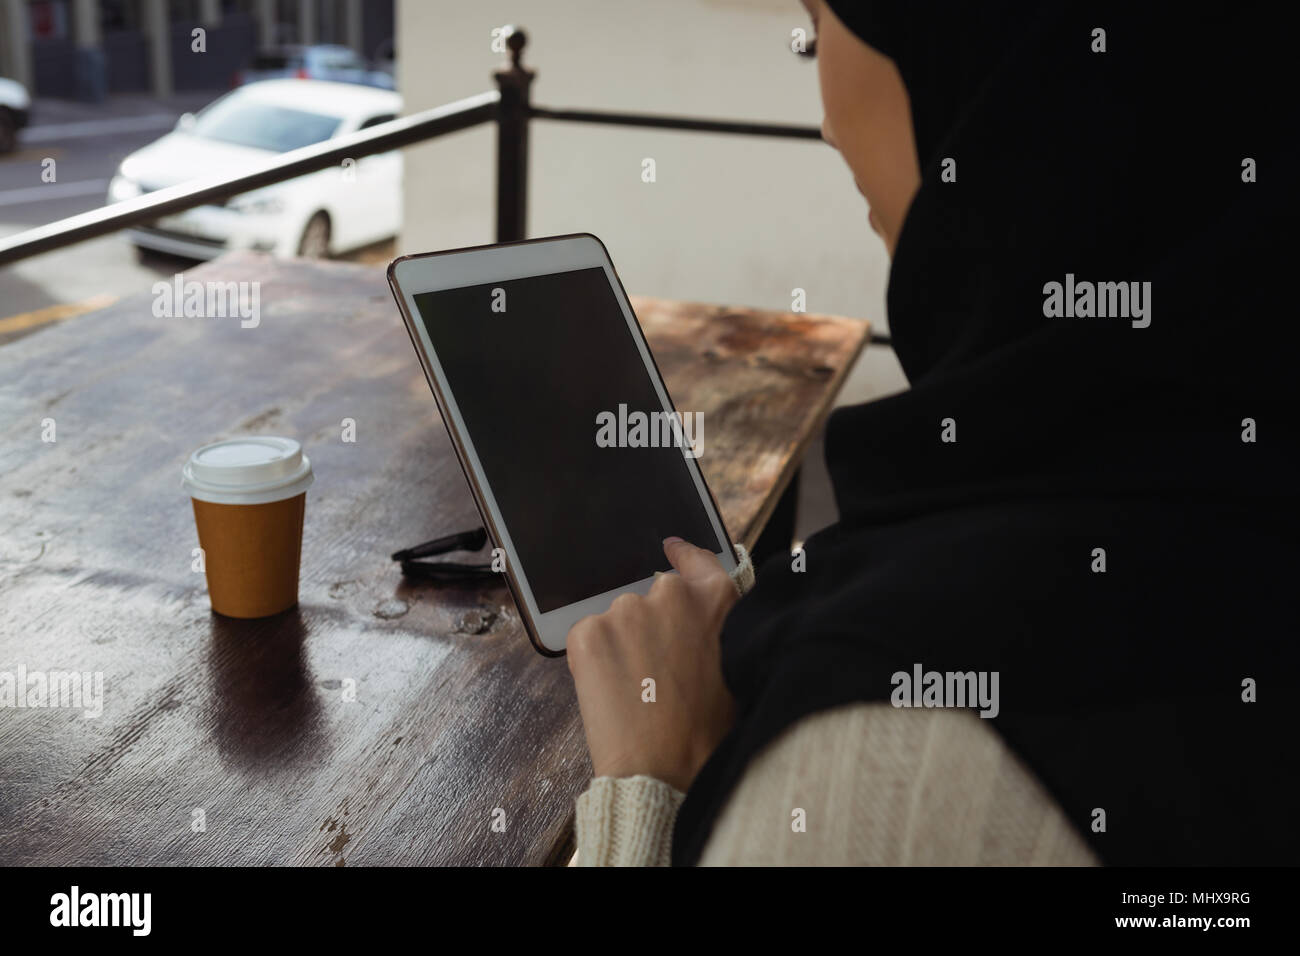 Hijab woman using digital tablet in cafe - Stock Image